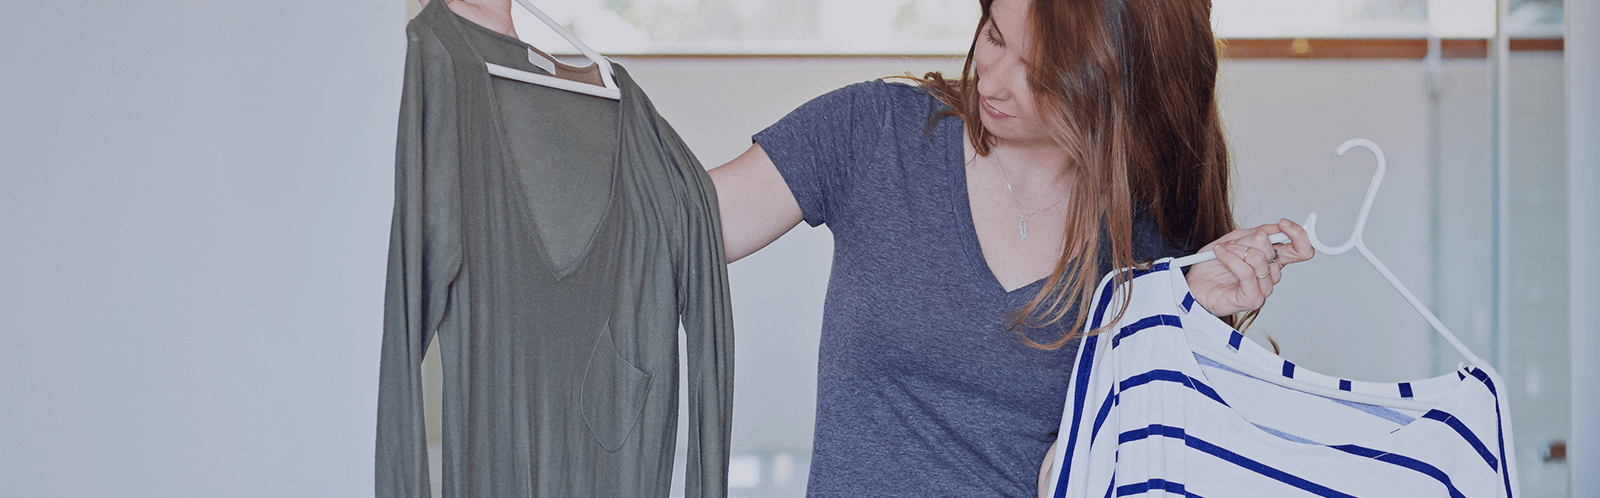 A female professional comparing two shirts.